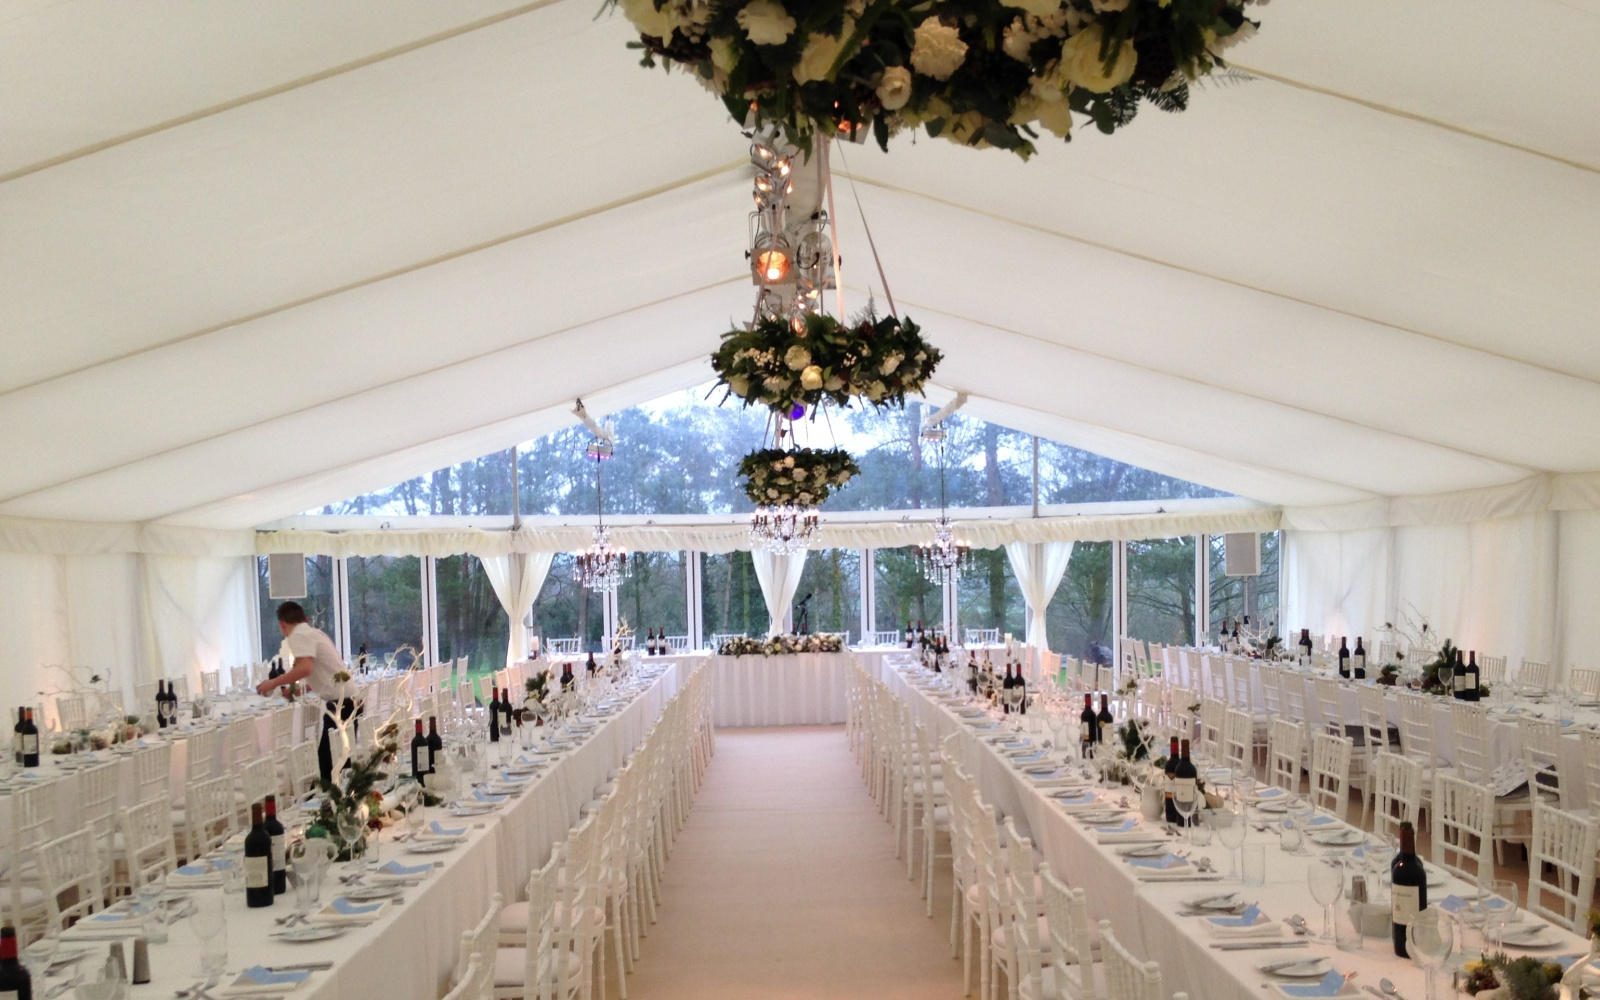 chair covers hire shropshire high cover john lewis marquee catering cheshire